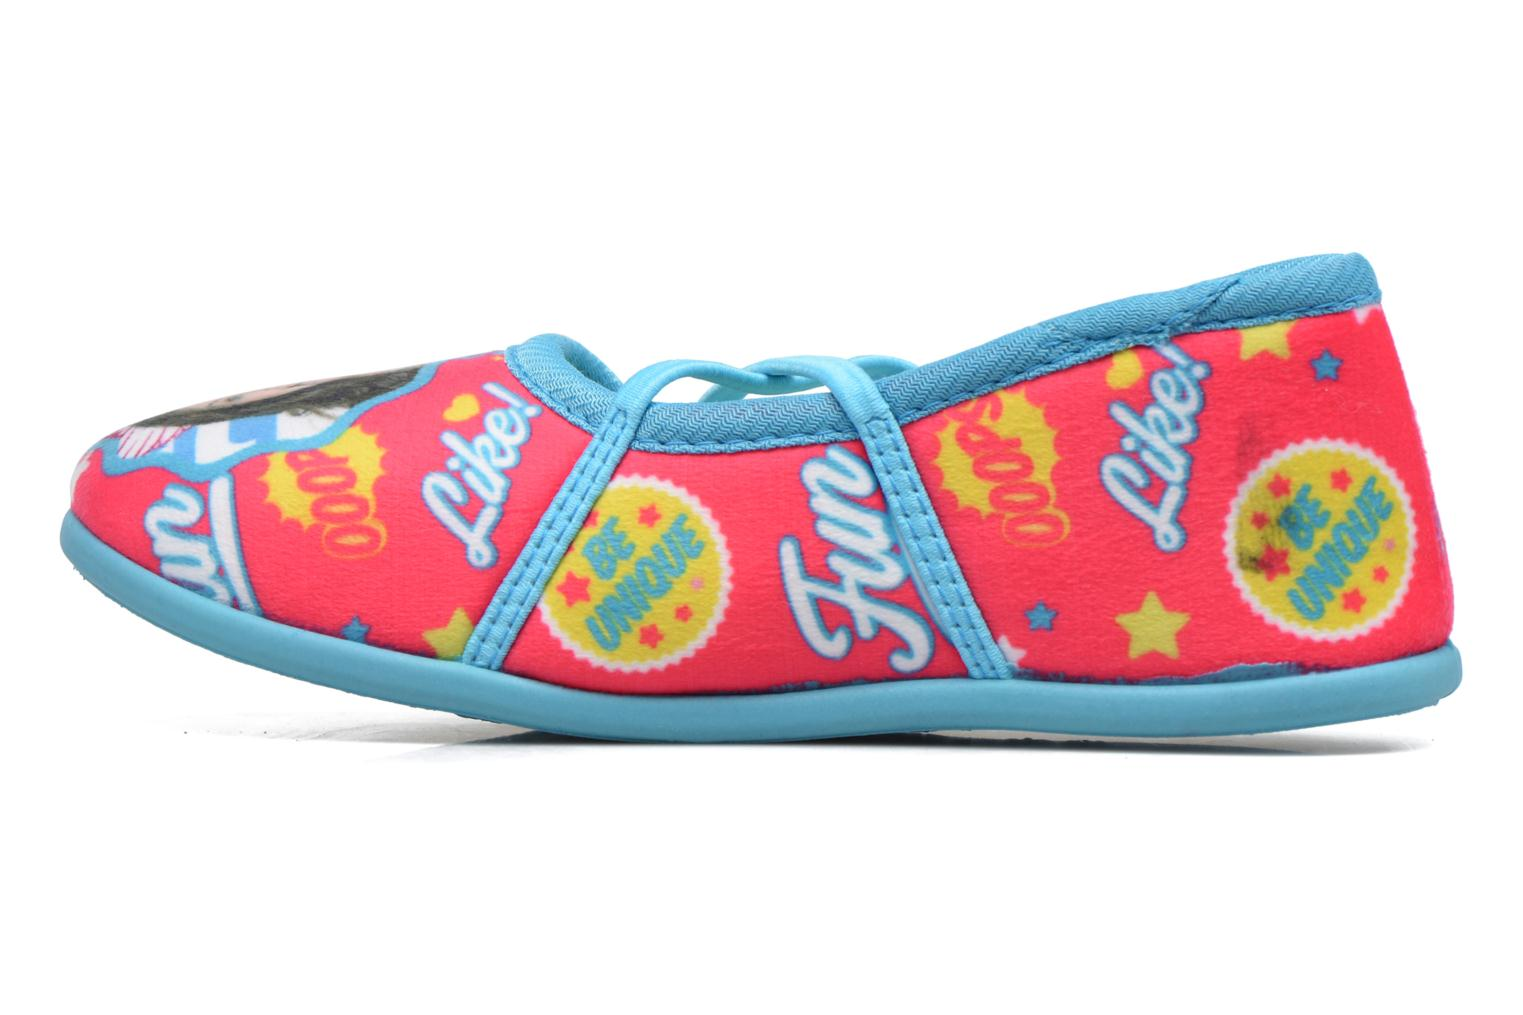 Slippers Soy Luna Sanadora Blue front view